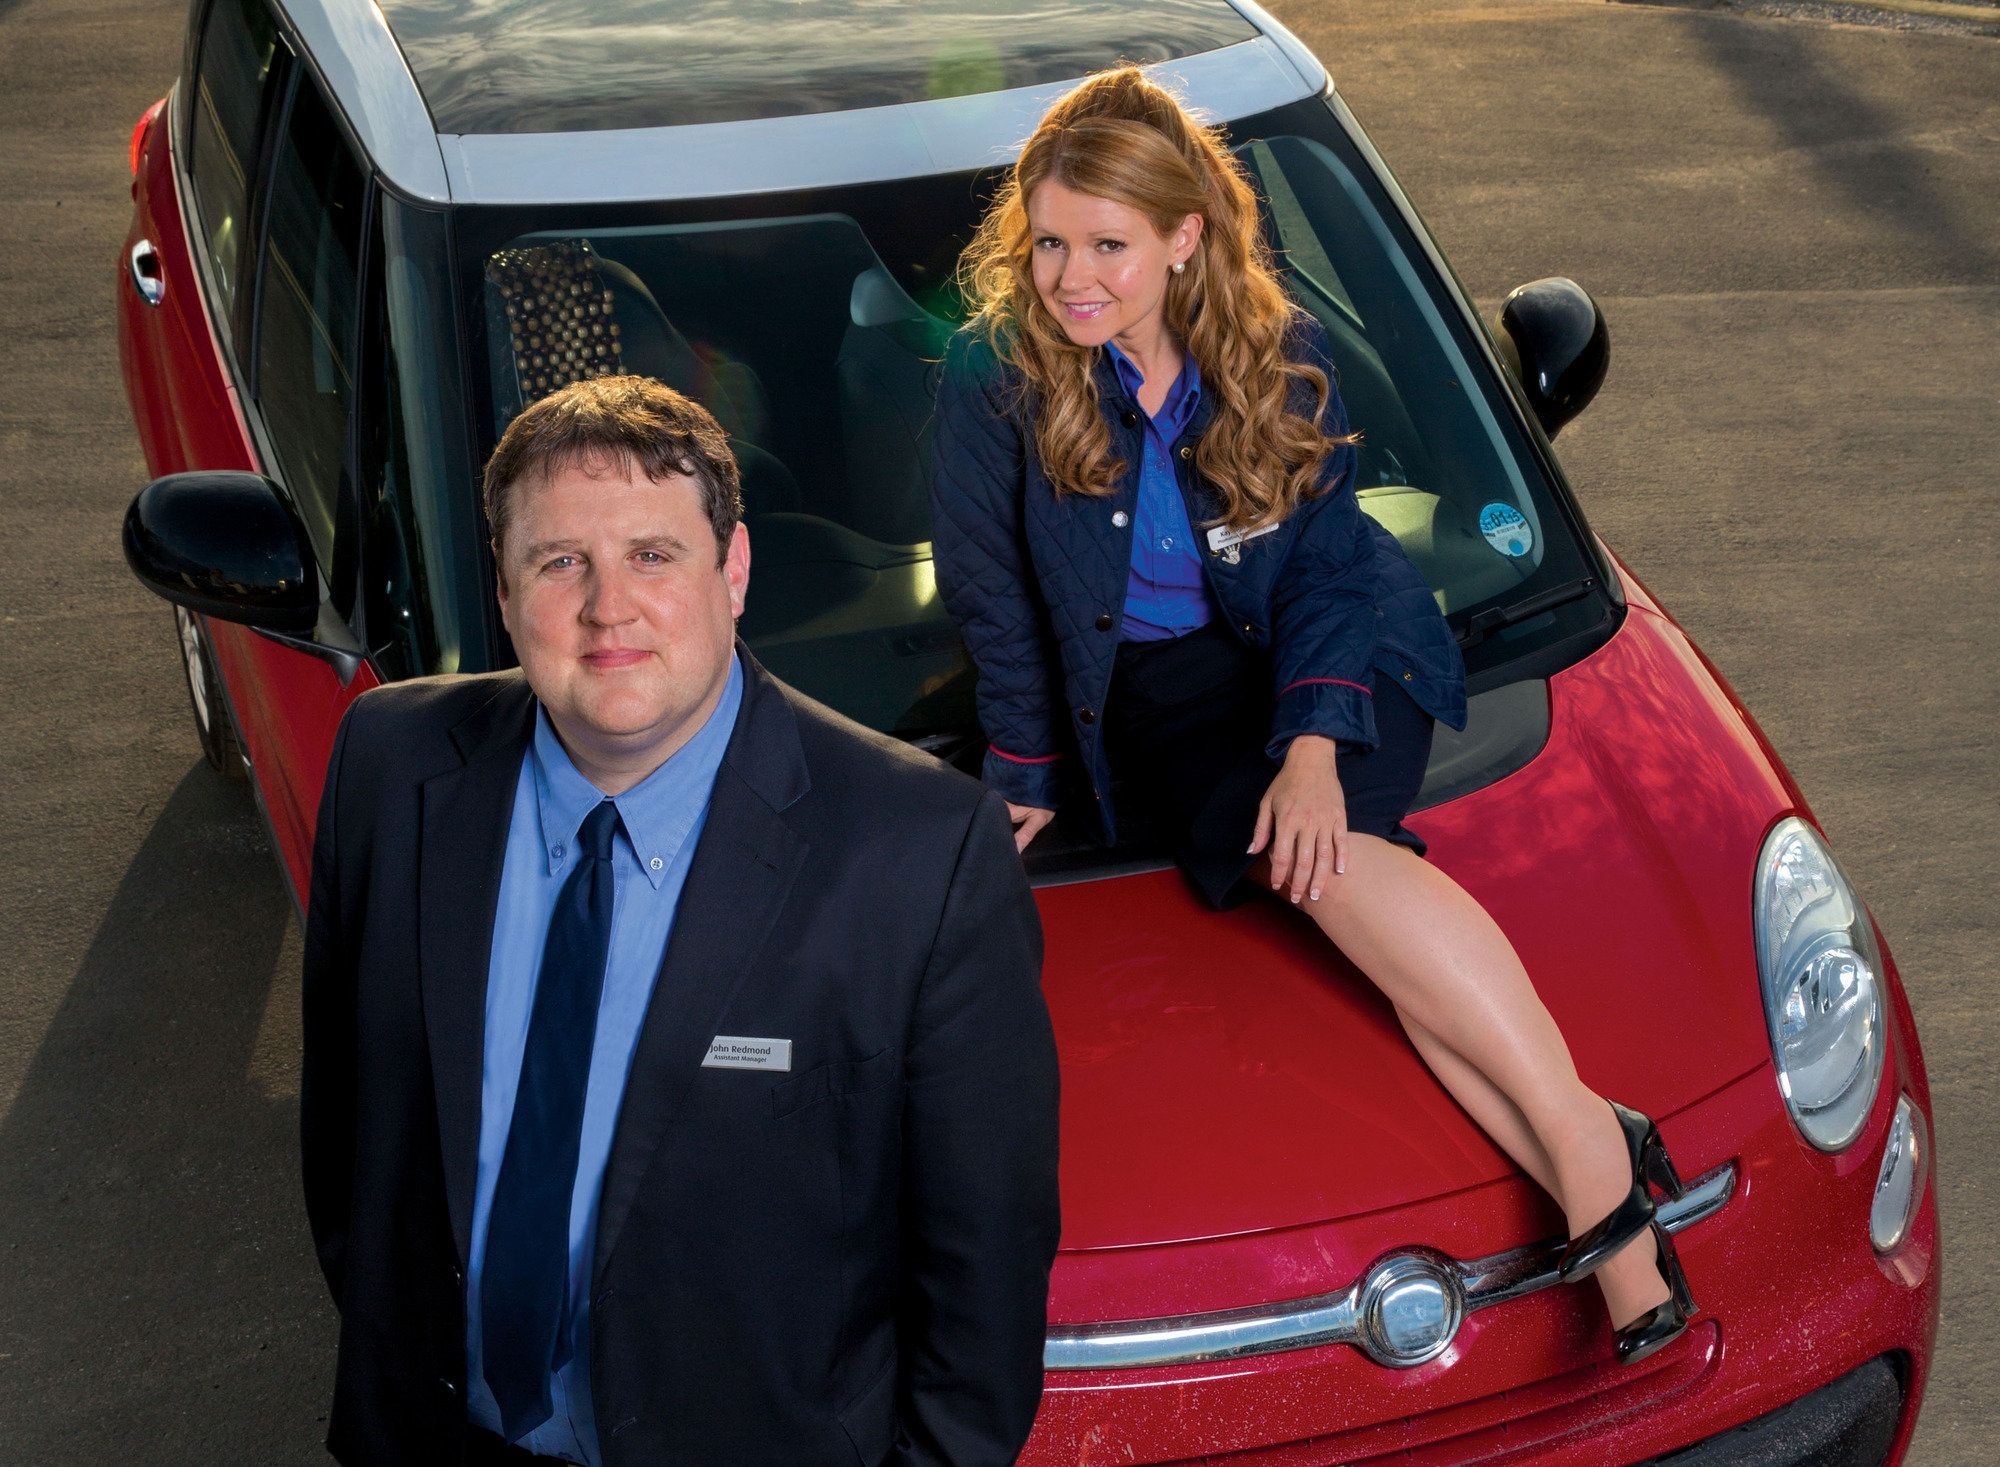 CAR SHARE: Sian Gibson Says She And 'Car Share' Co-Star Peter Kay Have 'Something In The